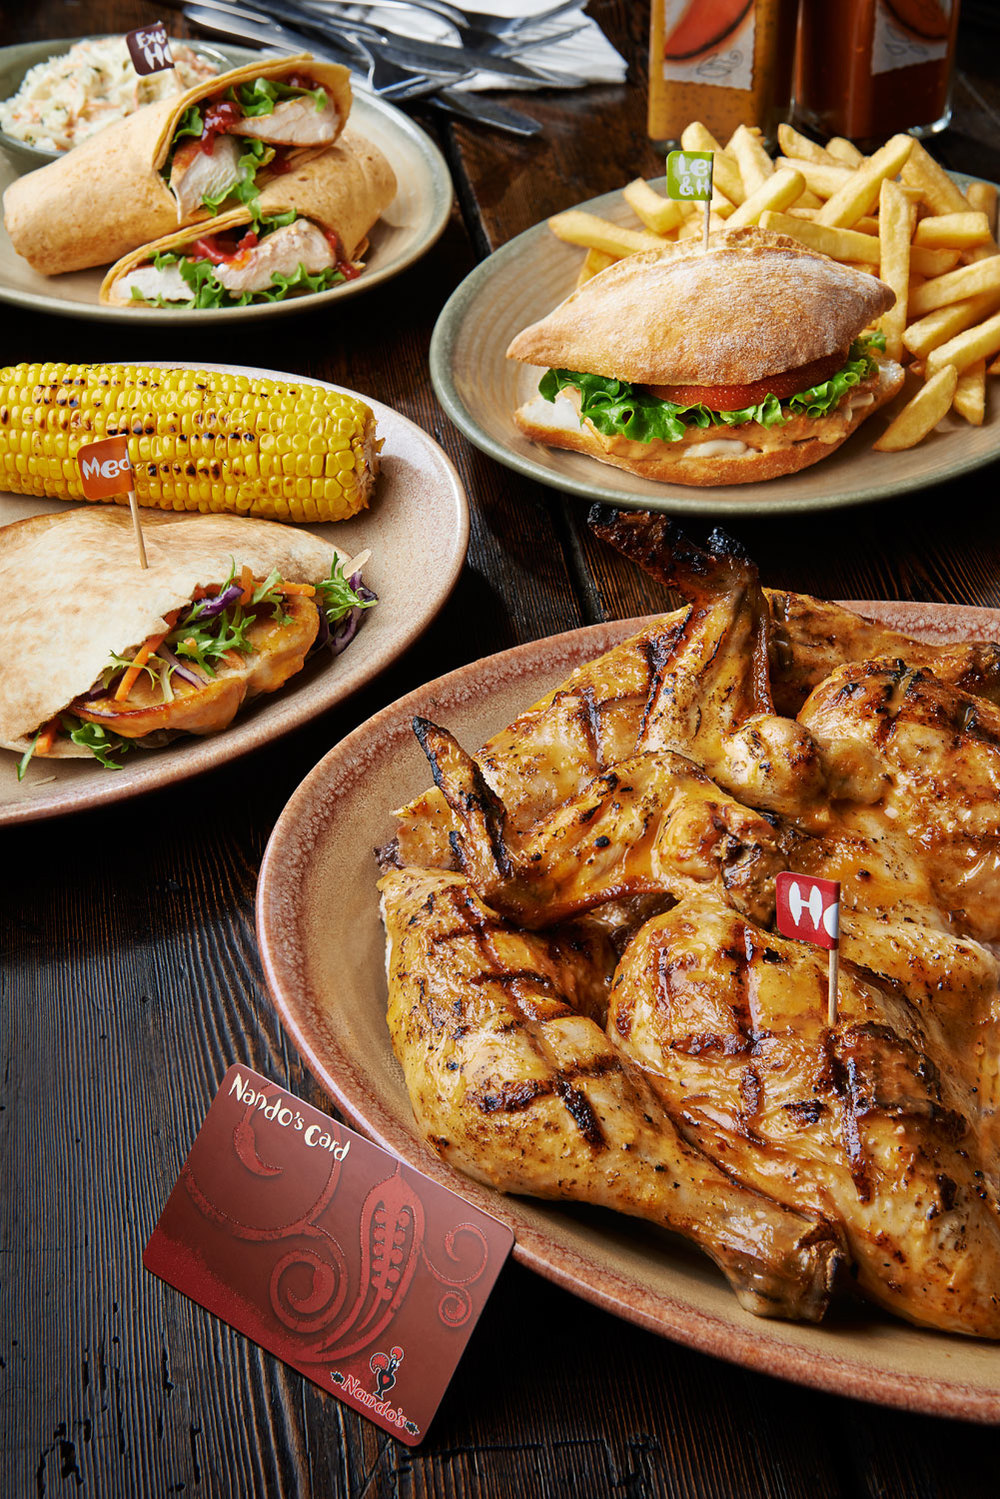 nando nando's nando chicken restaurant food photography food photographer london uk still life restaurants press pr advertising editorial design social media twitter Facebook platter card whole chicken coleslaw wrap pitta breast corn on the cob sweetcorn sweet burger tomato lettuce sauce